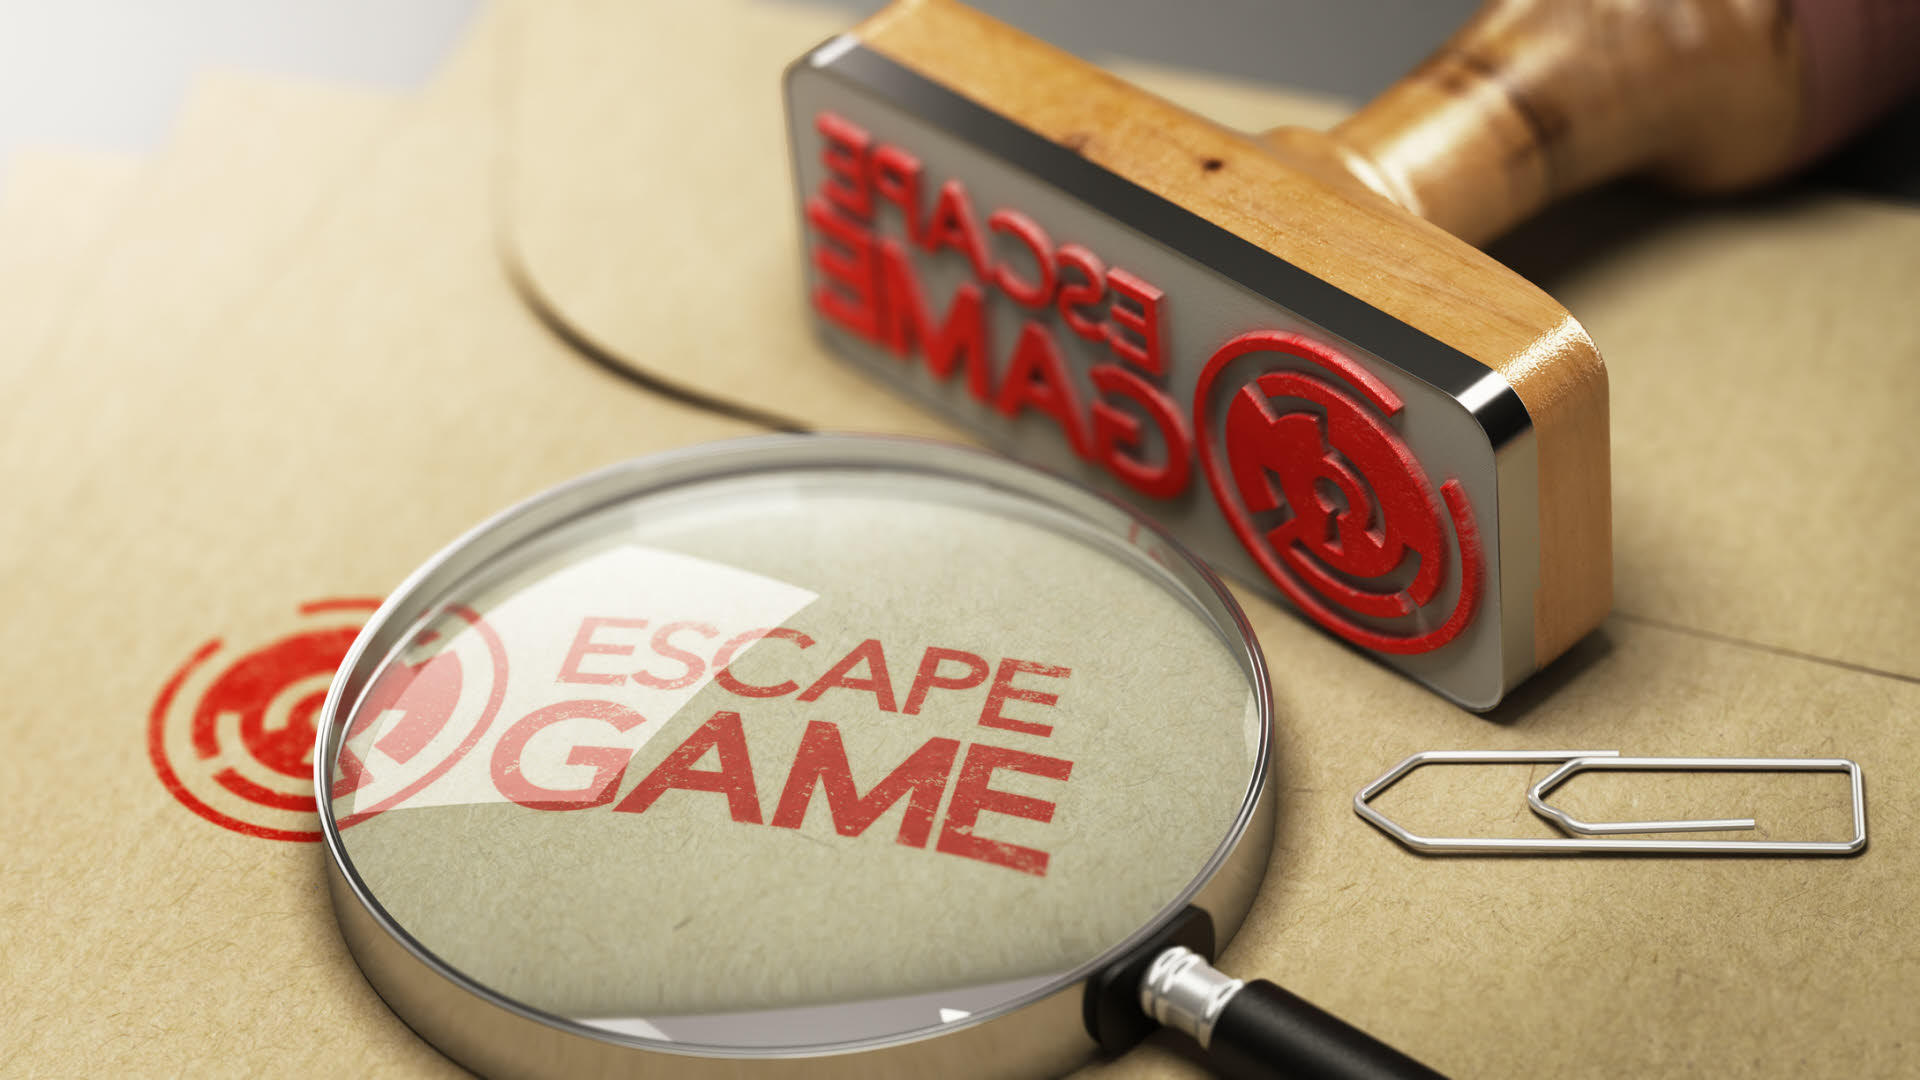 EscapeGame